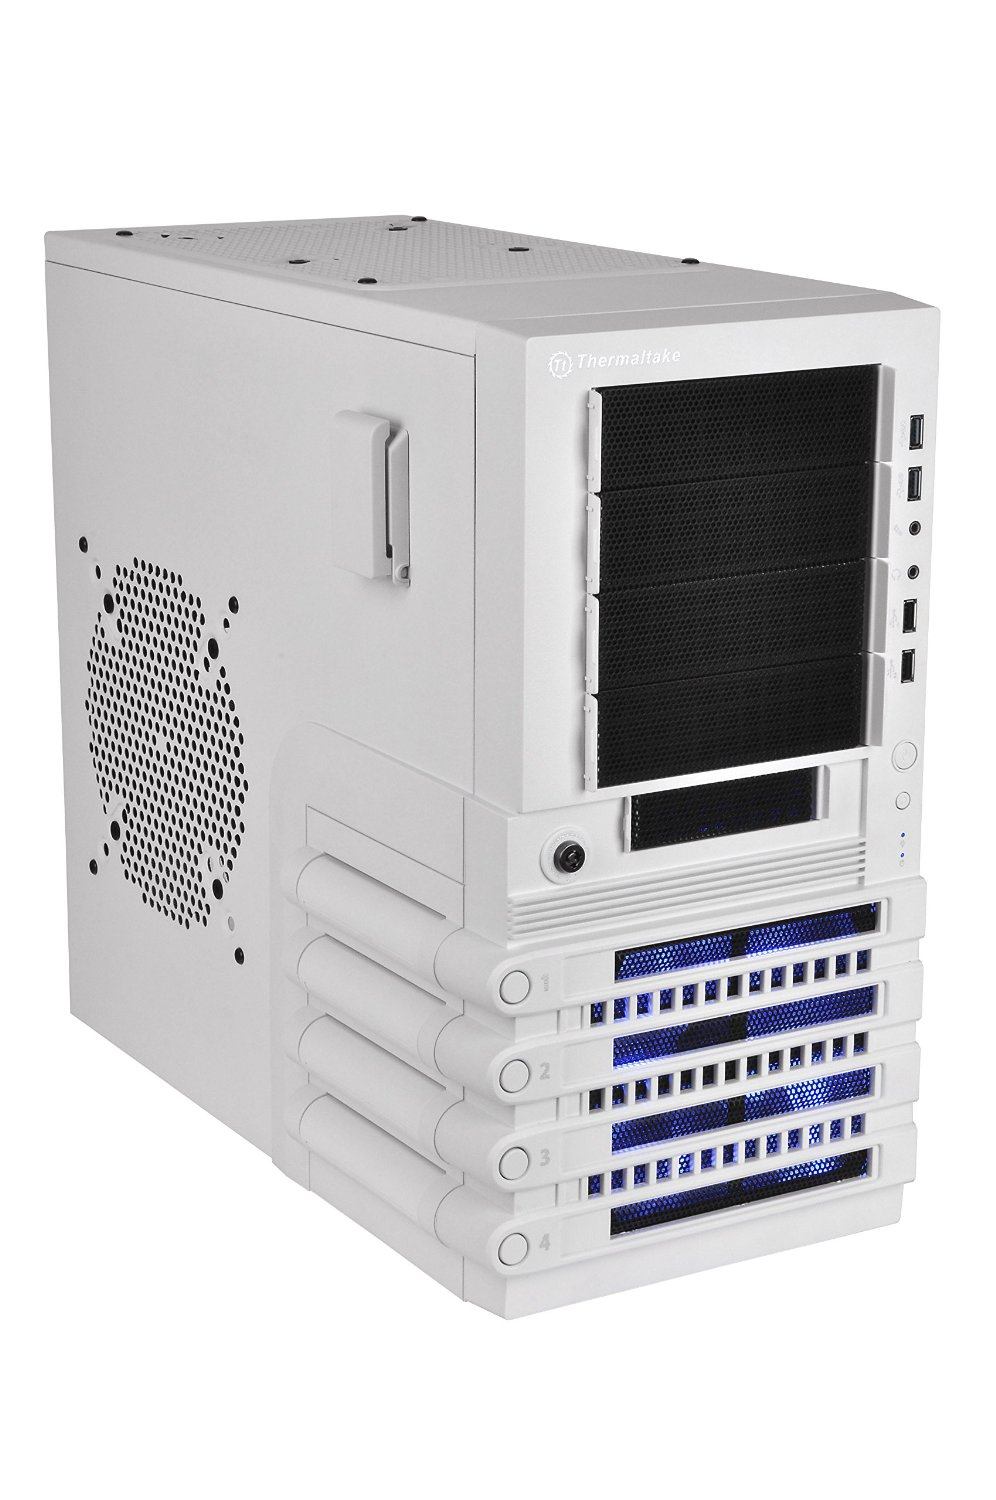 Thermaltake LEVEL 10 GTS Snow Edition White ATX Mid Tower Gaming Computer Case